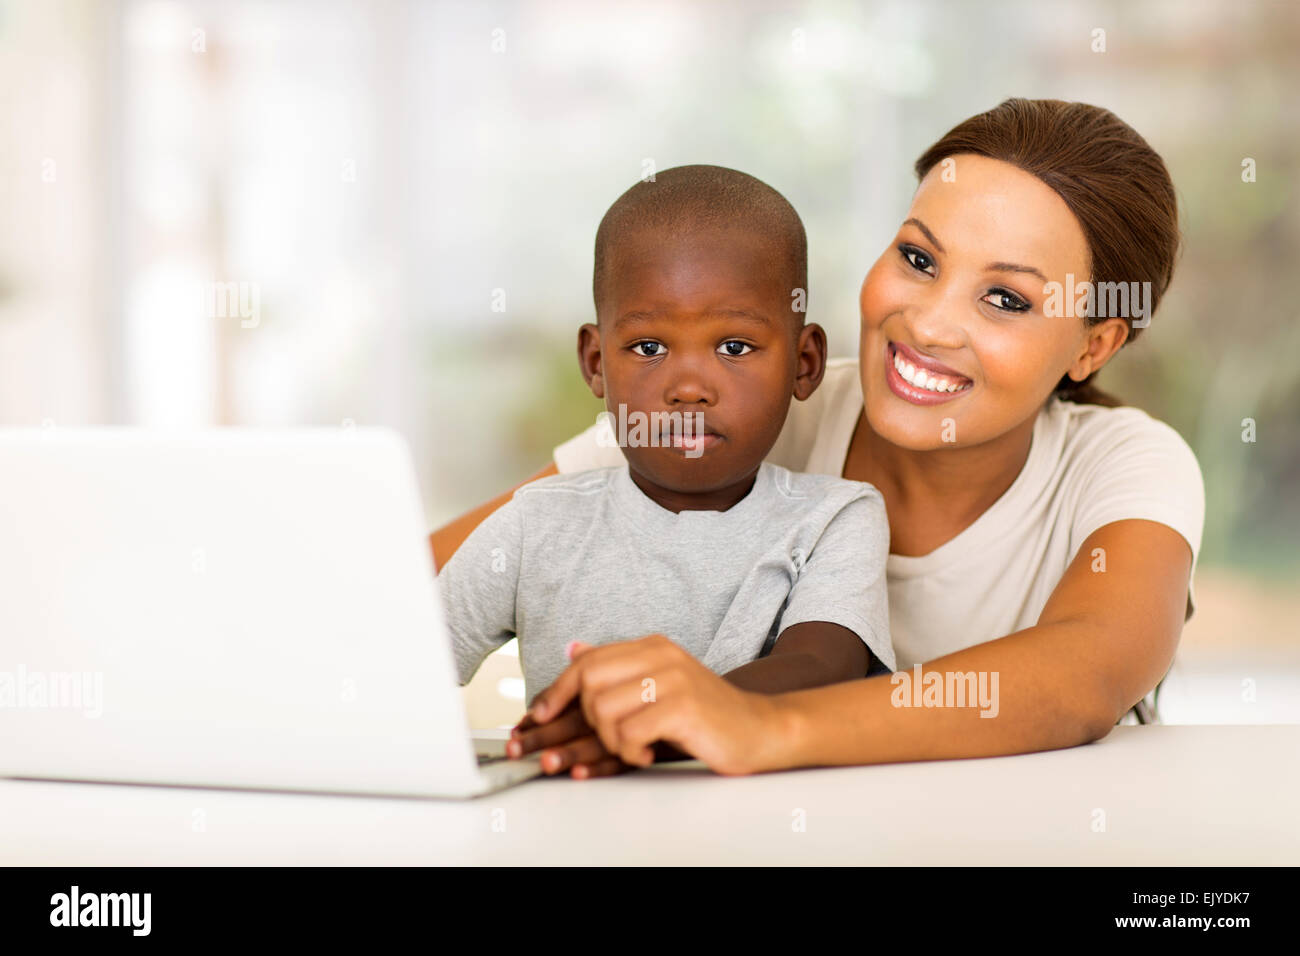 happy African woman relaxing at home with her little boy - Stock Image